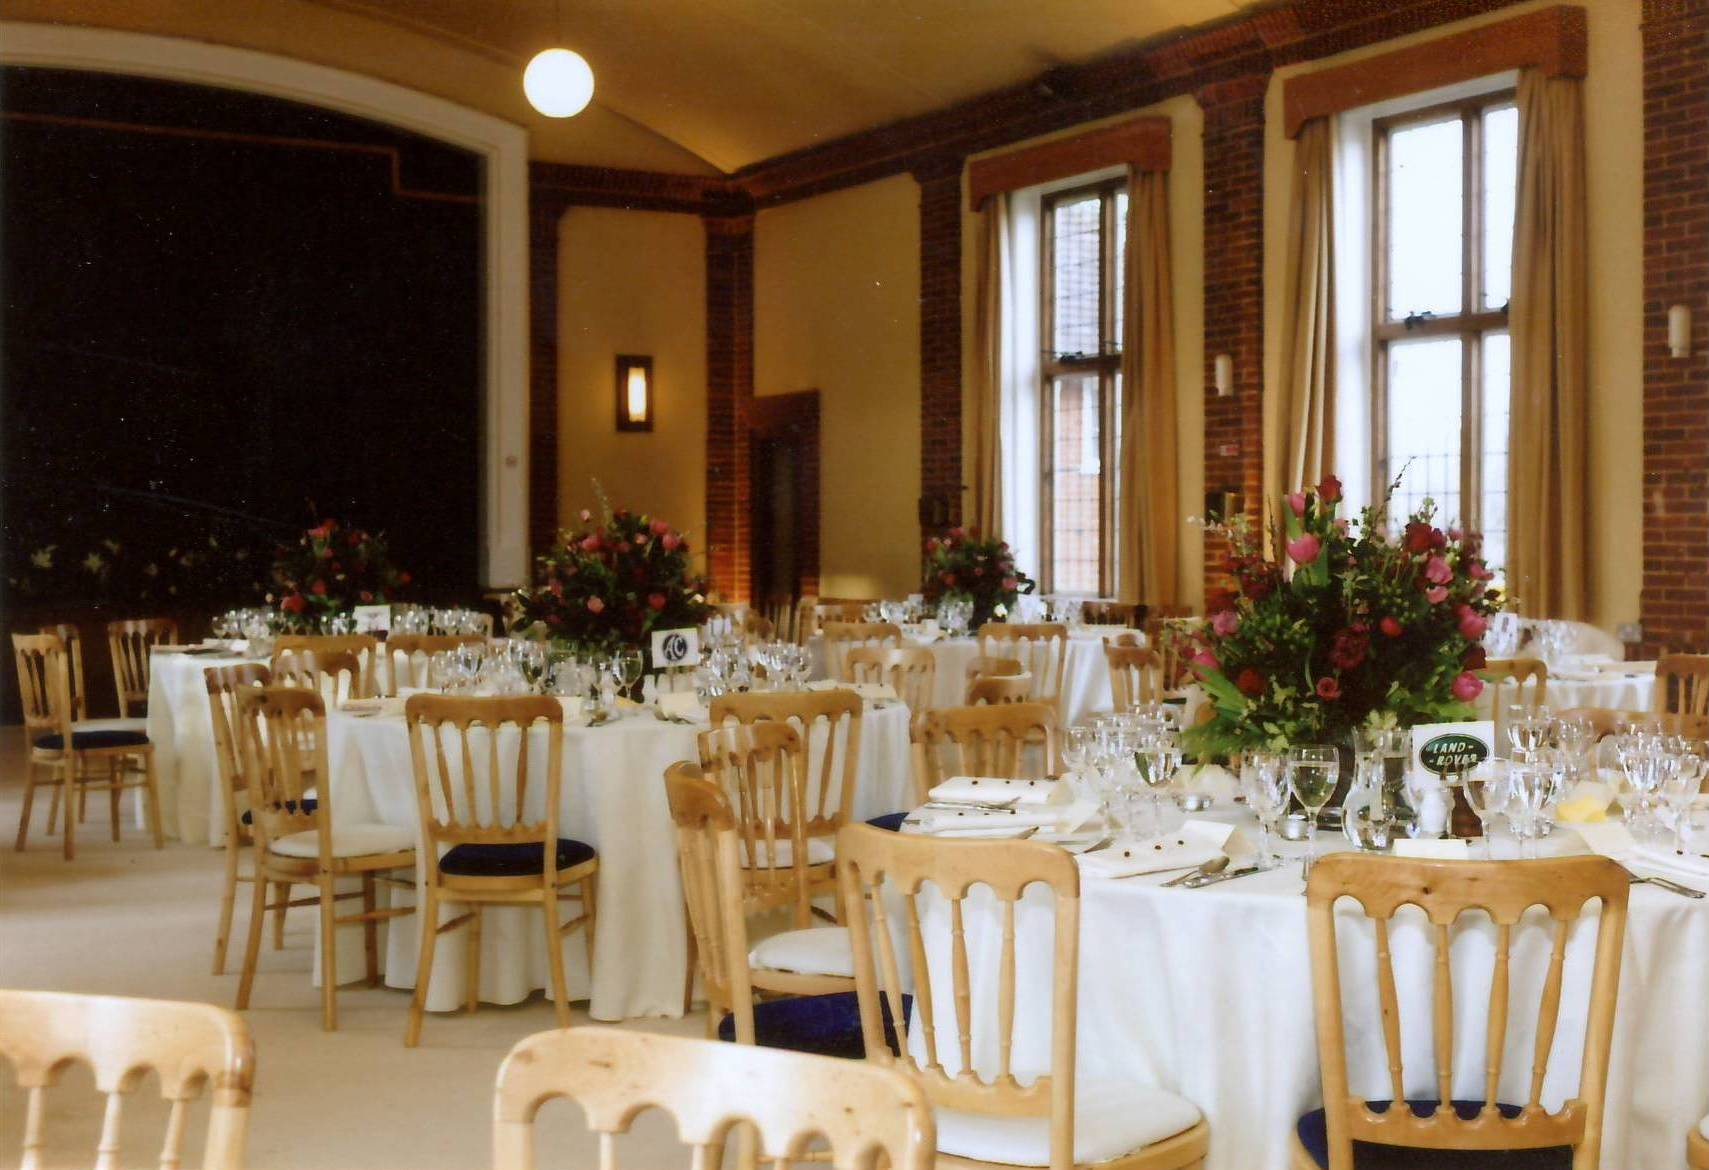 Beautiful church hall wedding decorations wedding facilities junglespirit Images